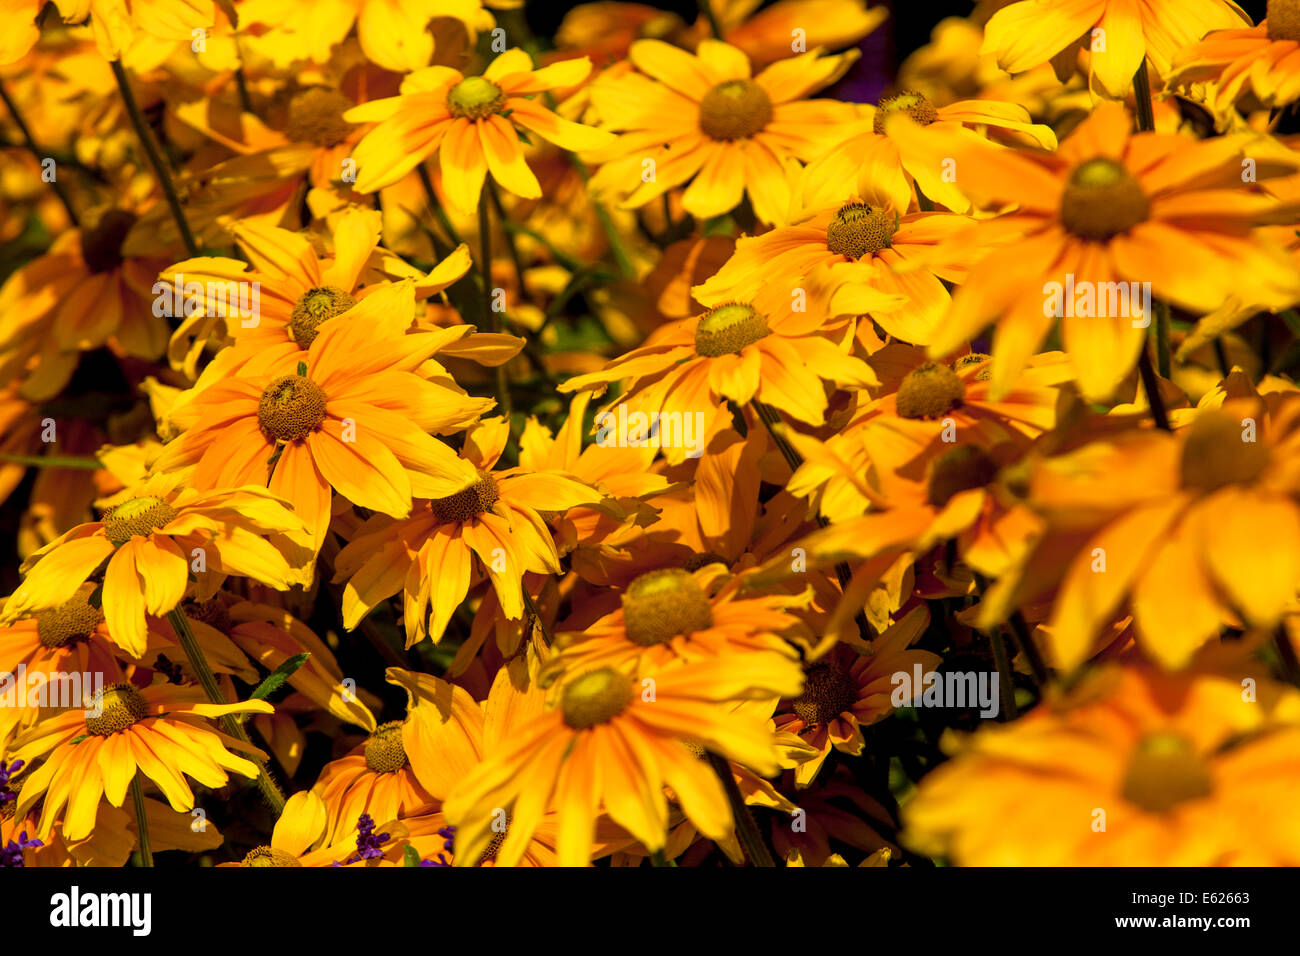 Annual flowers flower bed stock photos annual flowers flower bed colorful flower bed of annual flowers rudbeckia hirta stock image izmirmasajfo